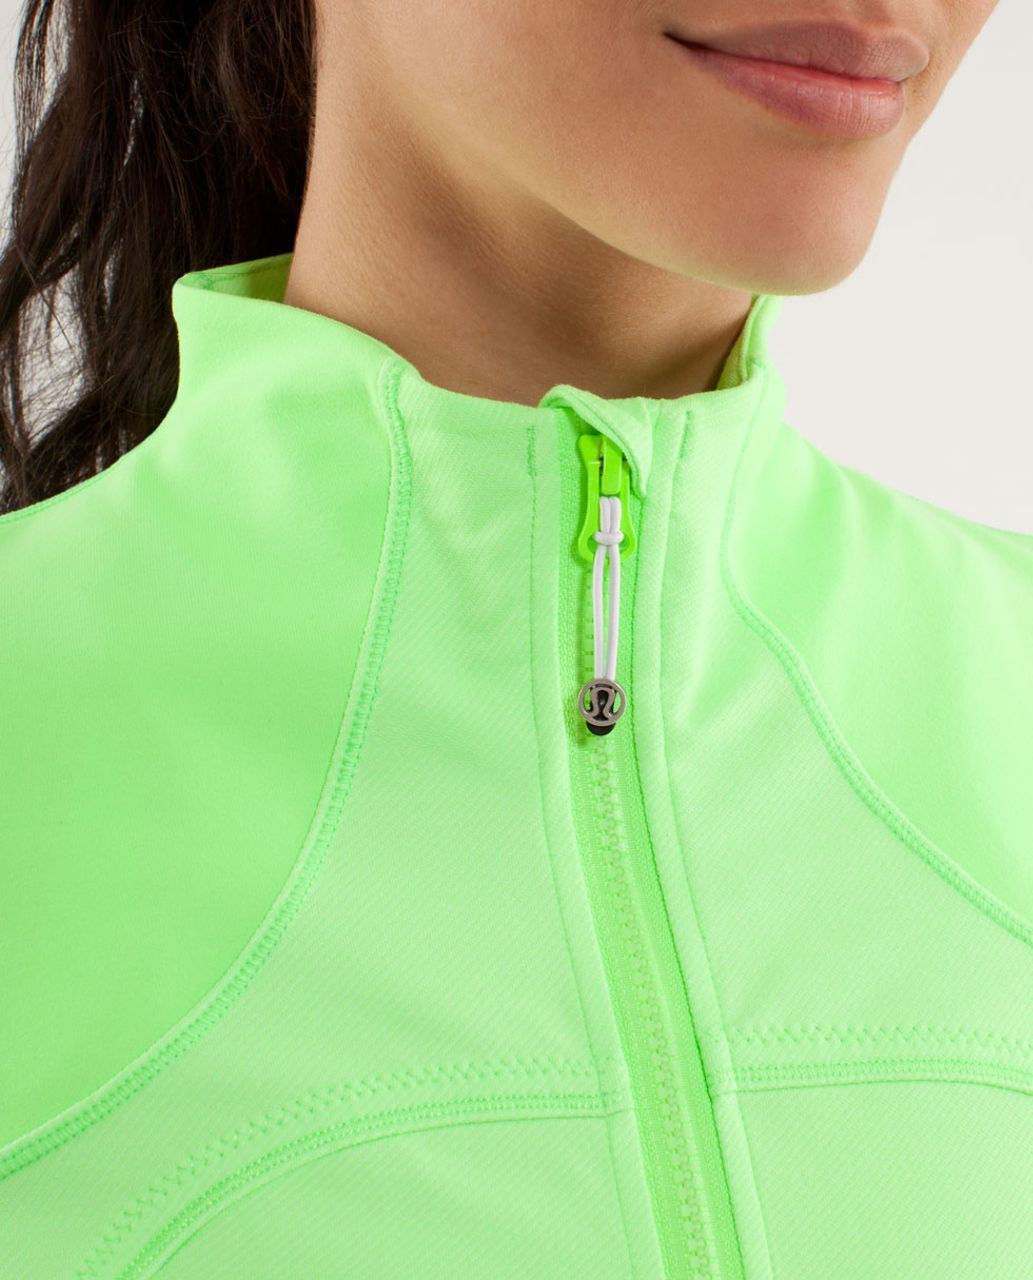 Lululemon Forme Jacket - Zippy Green